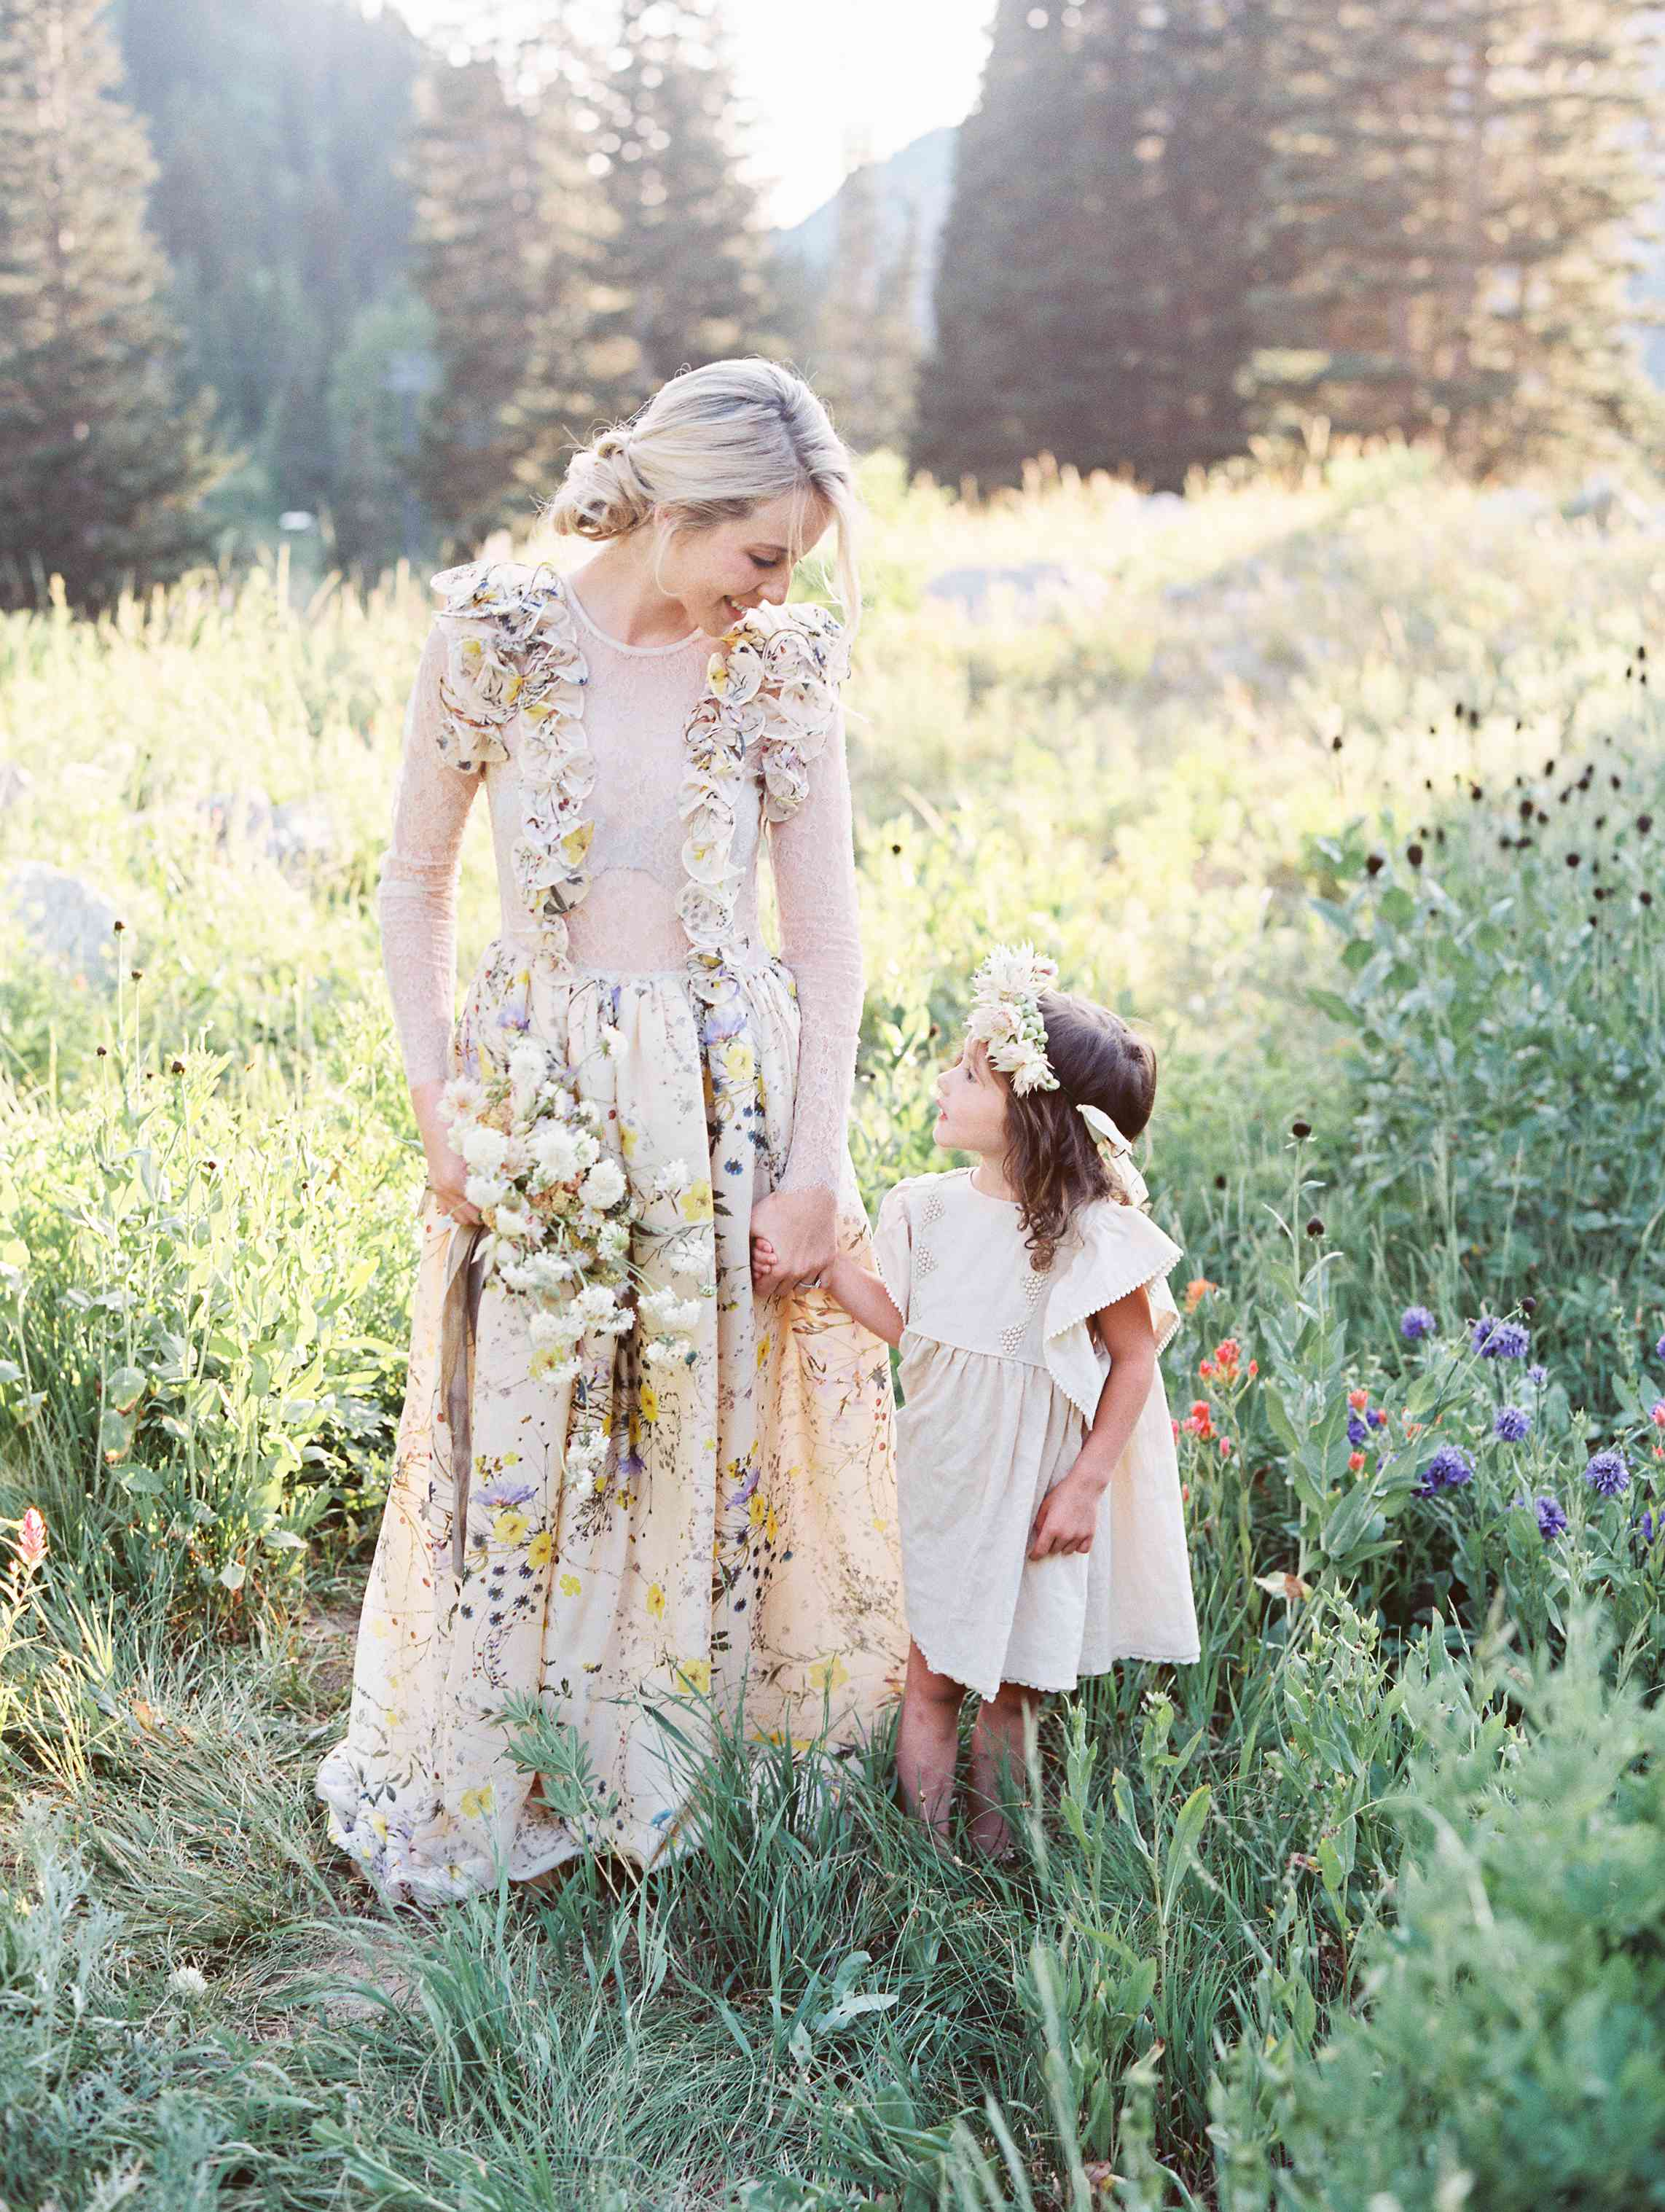 Bride in a floral printed dress holding flower girl's hand in a field of flowers